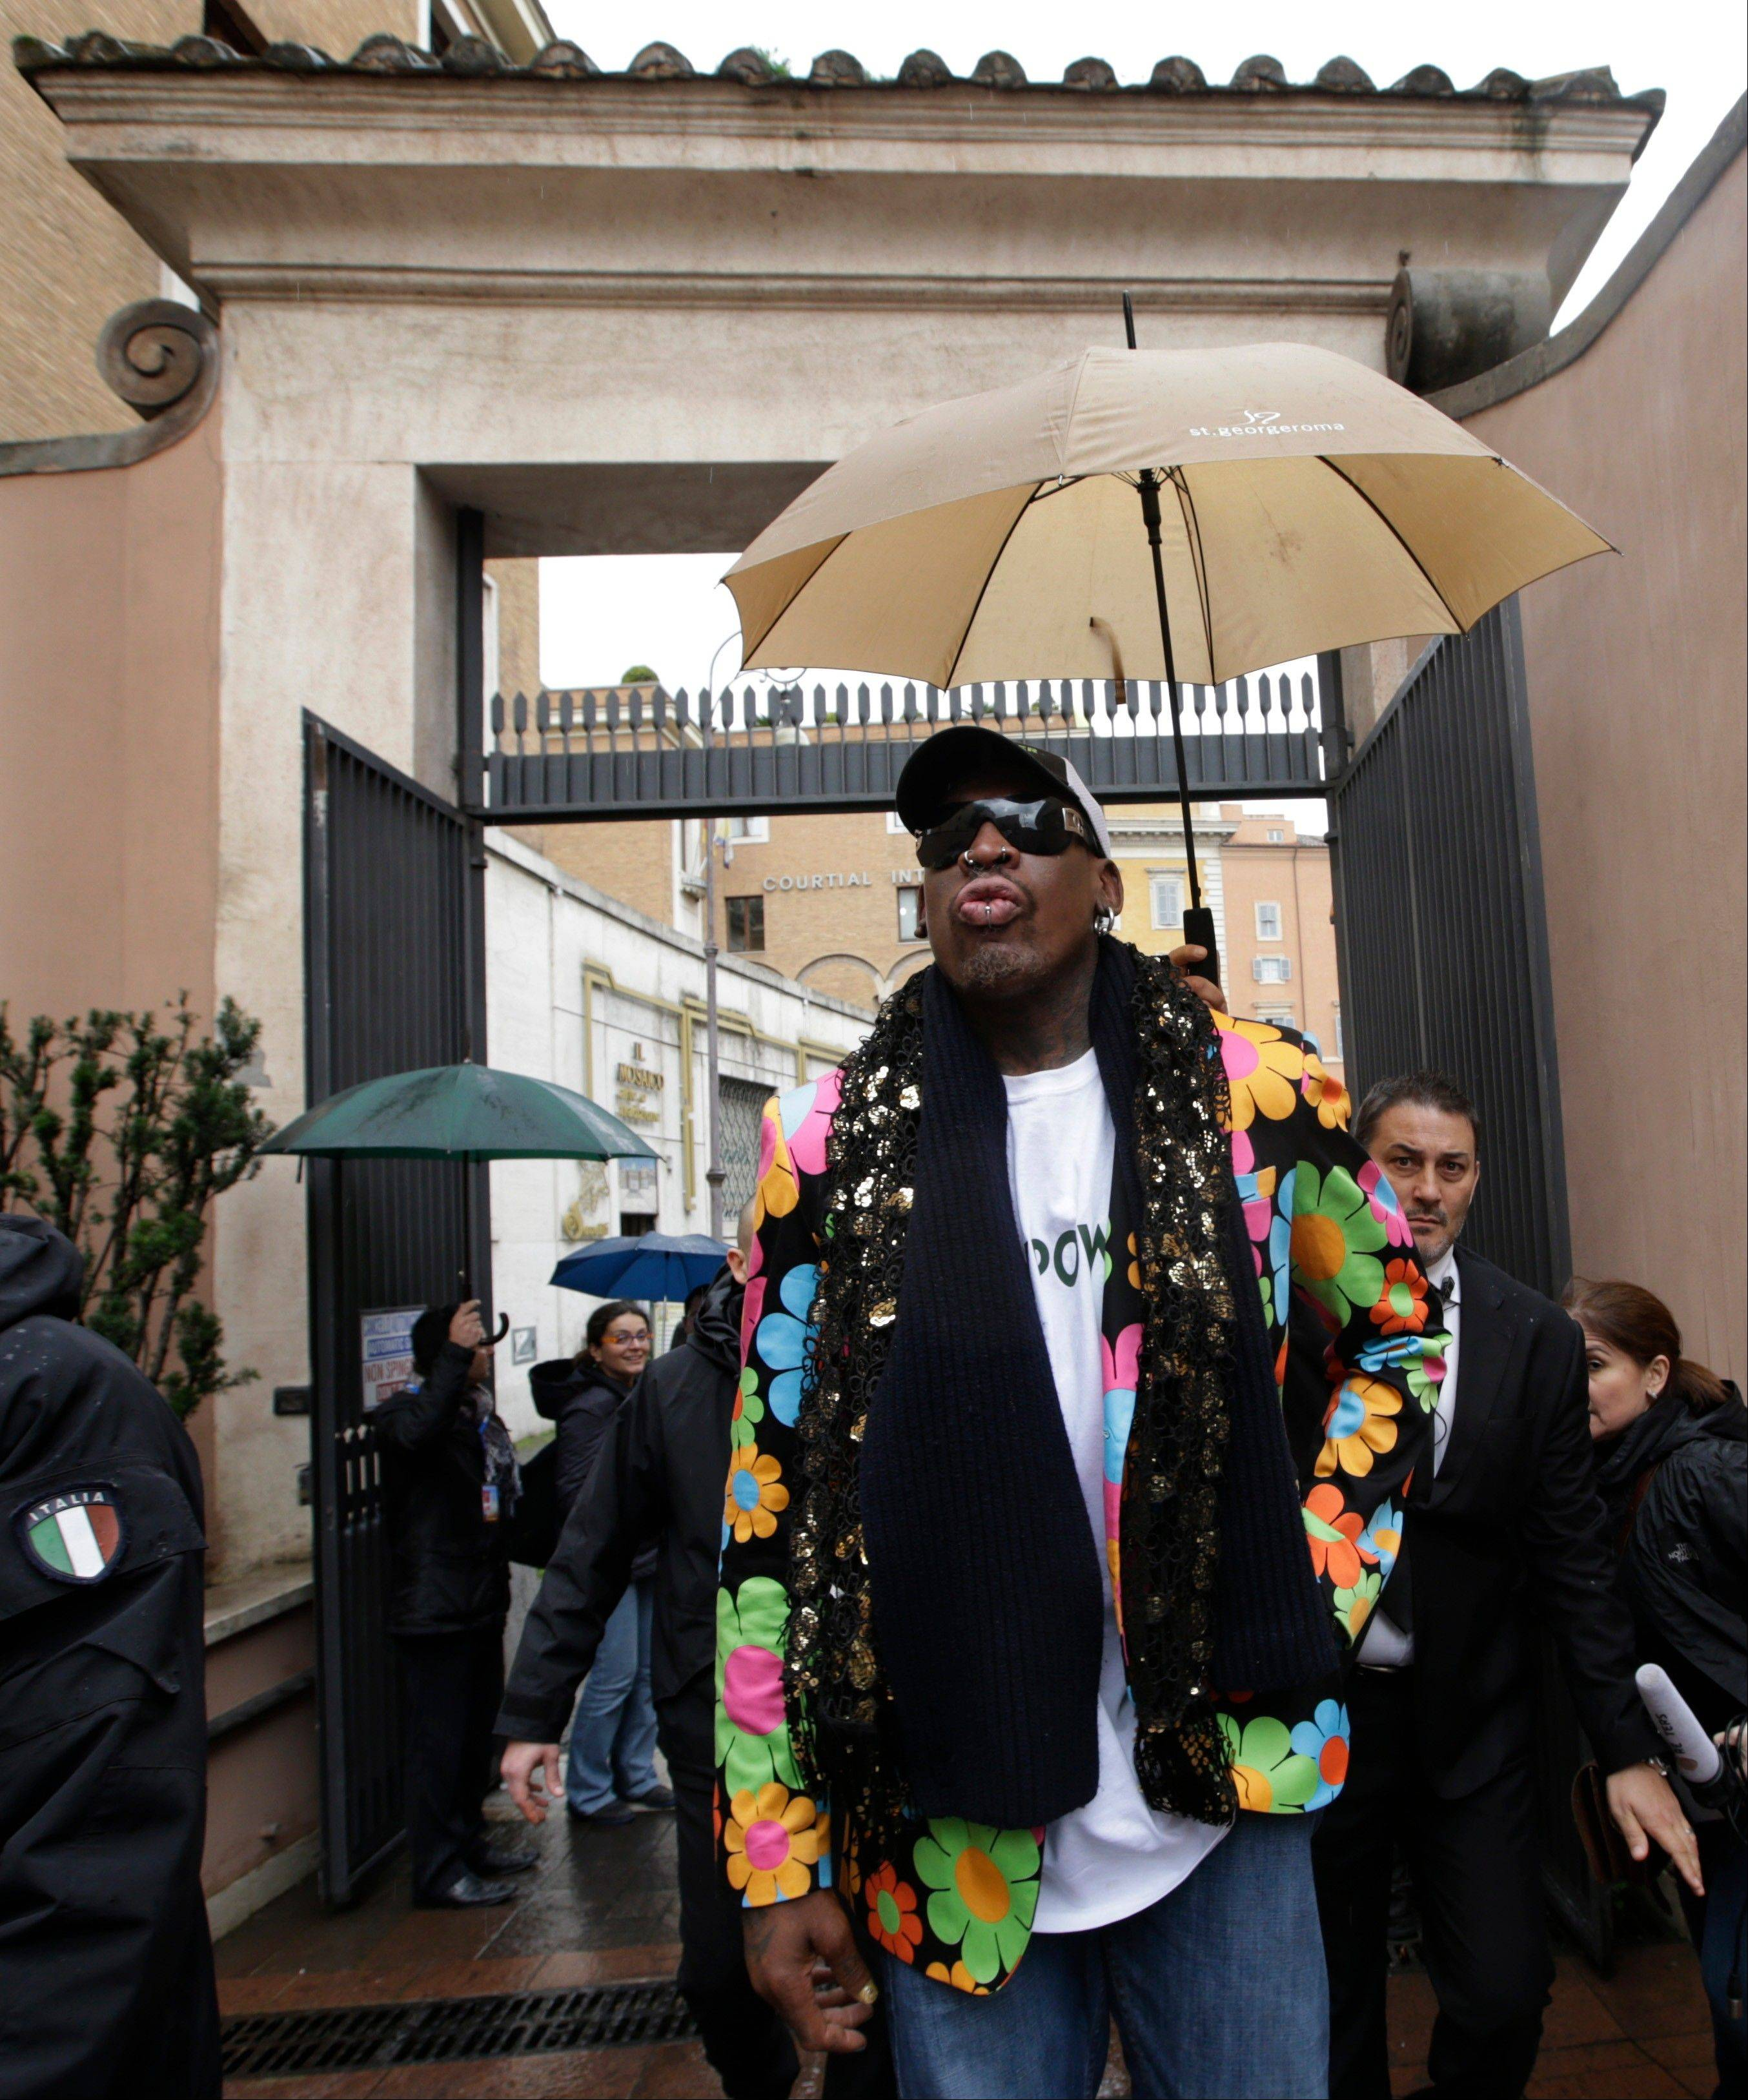 Former NBA star Dennis Rodman walks down a street near St. Peter�s Square at the Vatican, Wednesday, March 13, 2013. Rodman is in Rome to promote the papal candidacy of Cardinal Peter Turkson of Ghana.